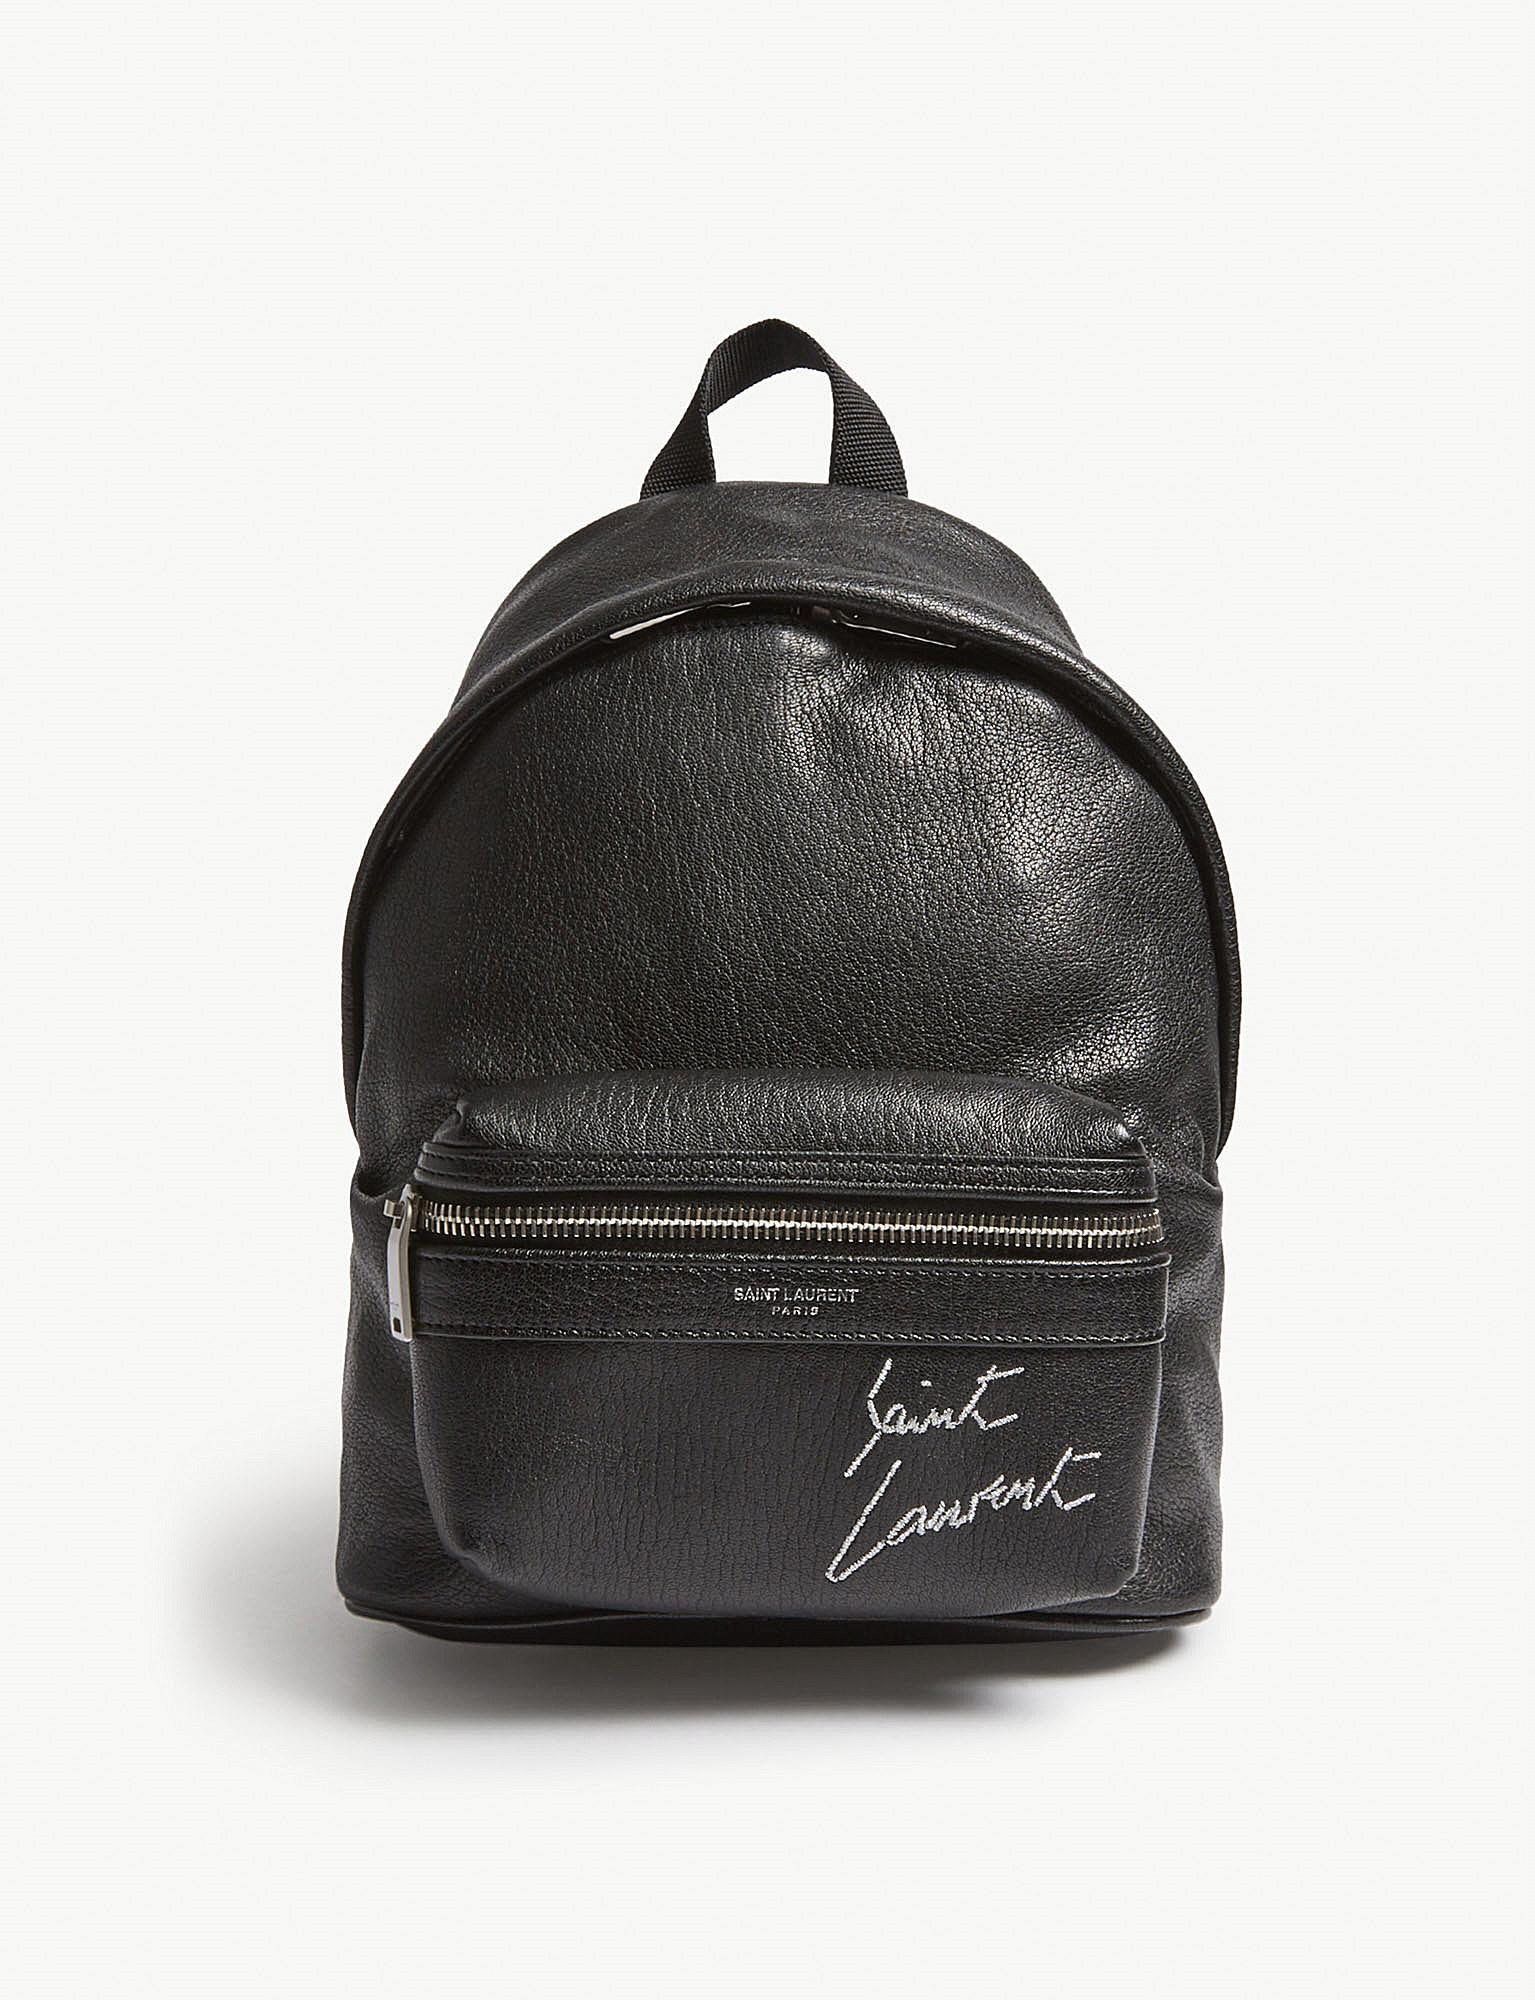 ca4d6d667 Saint Laurent Toy City Leather Backpack in Black - Lyst